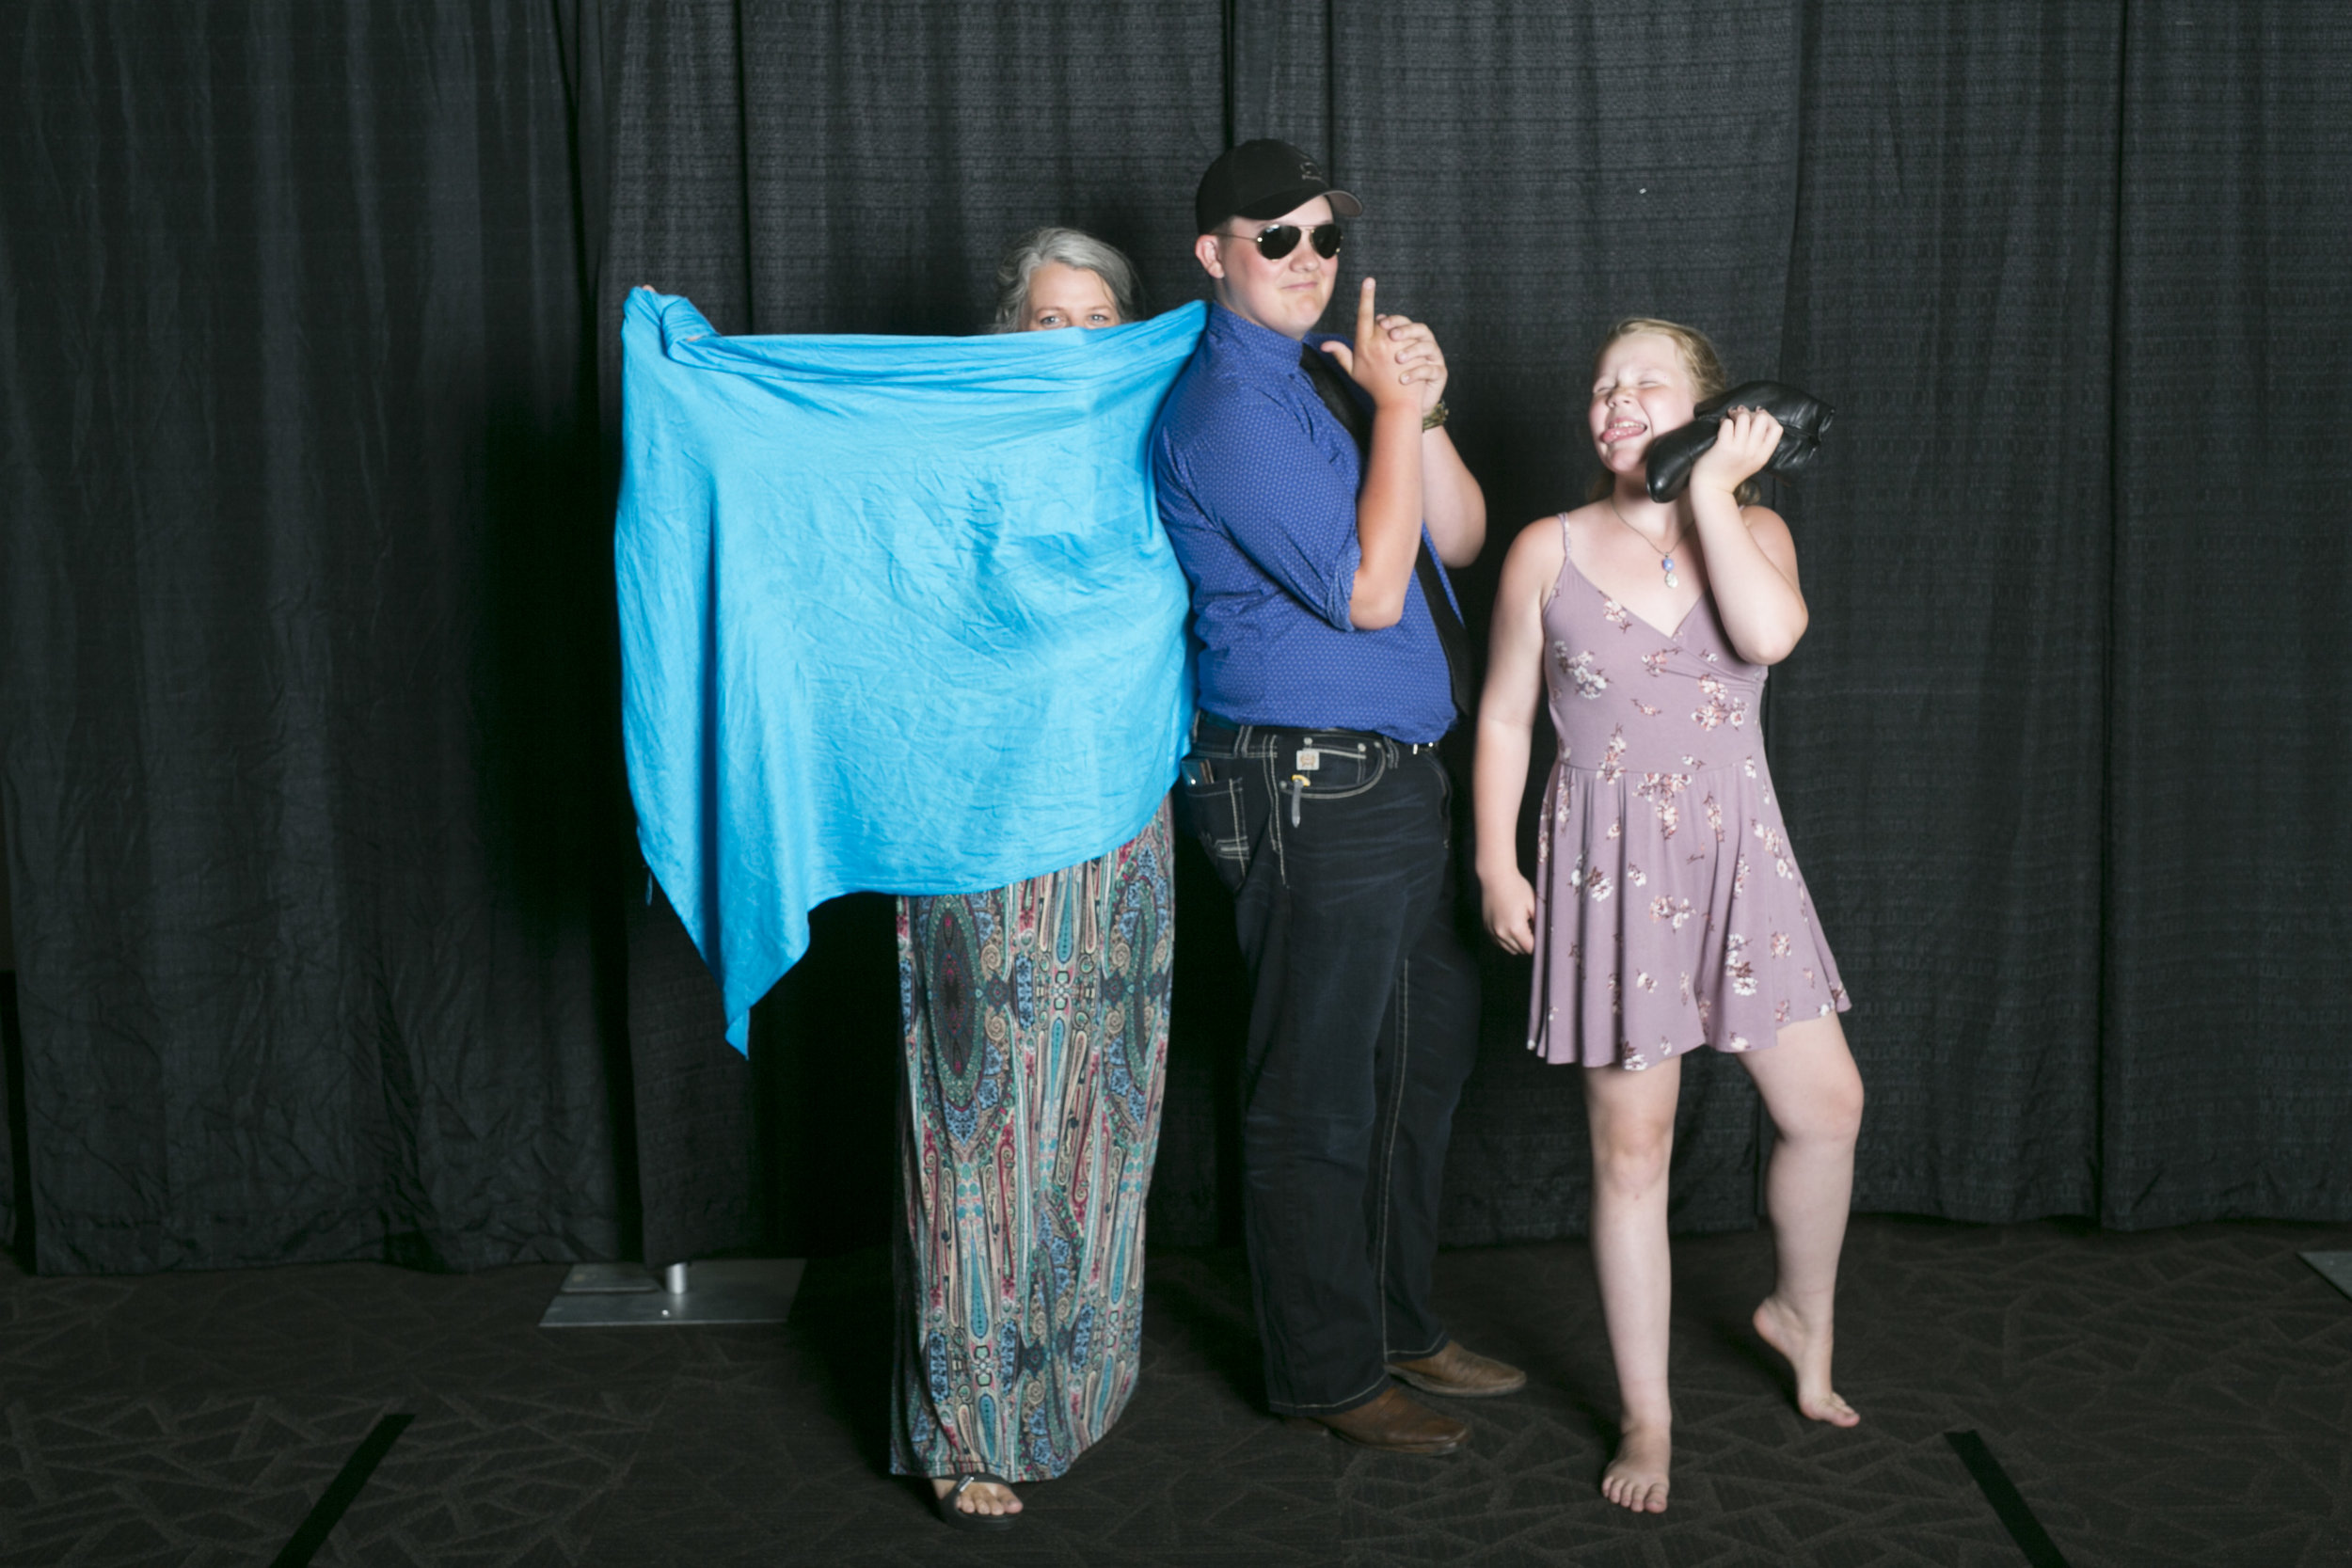 wedding photo booth-67.jpg